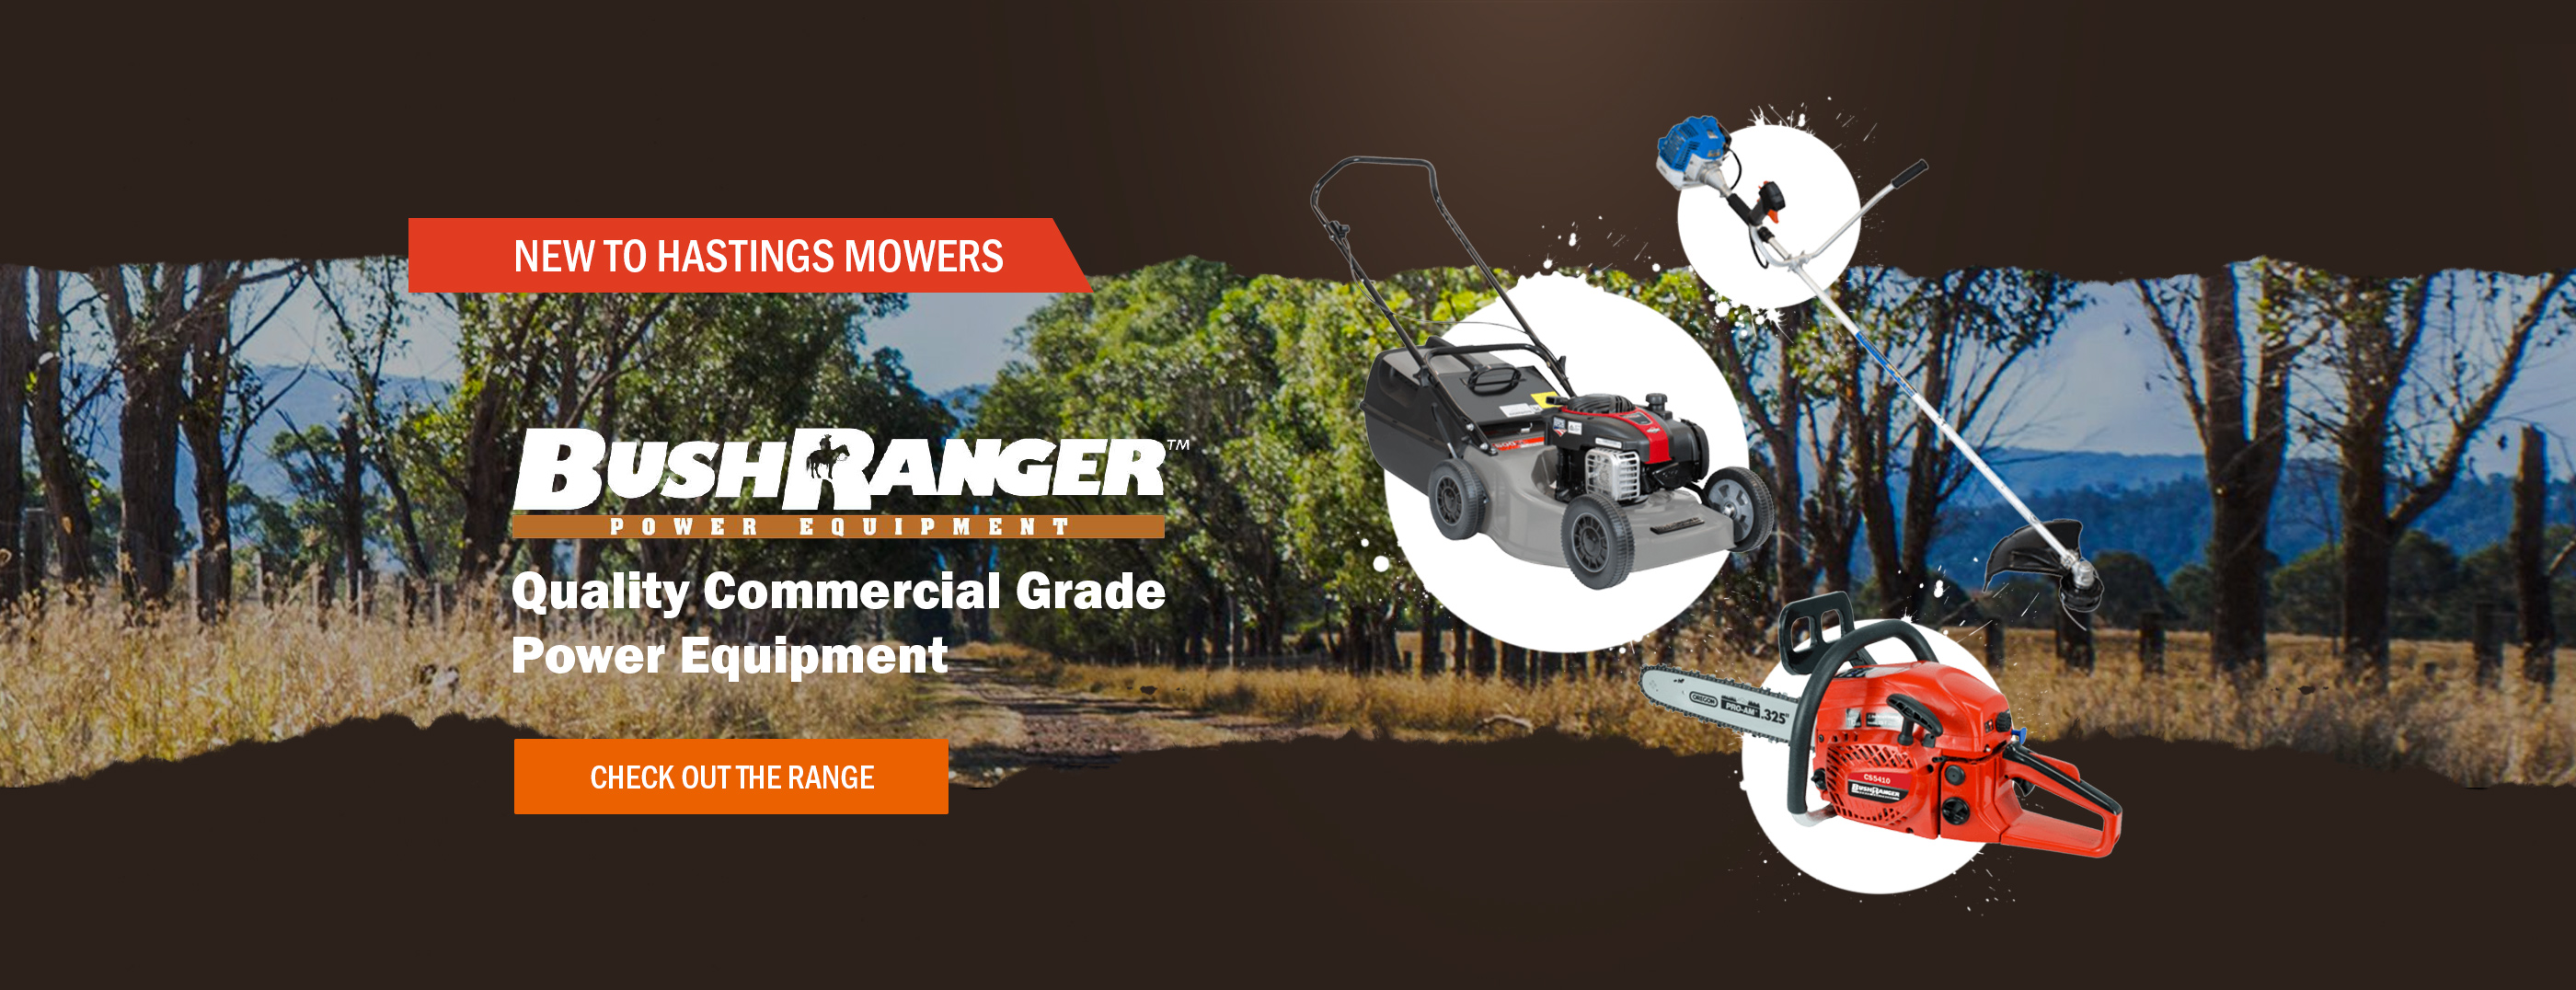 Bushranger NEW to Hastings Mowers!